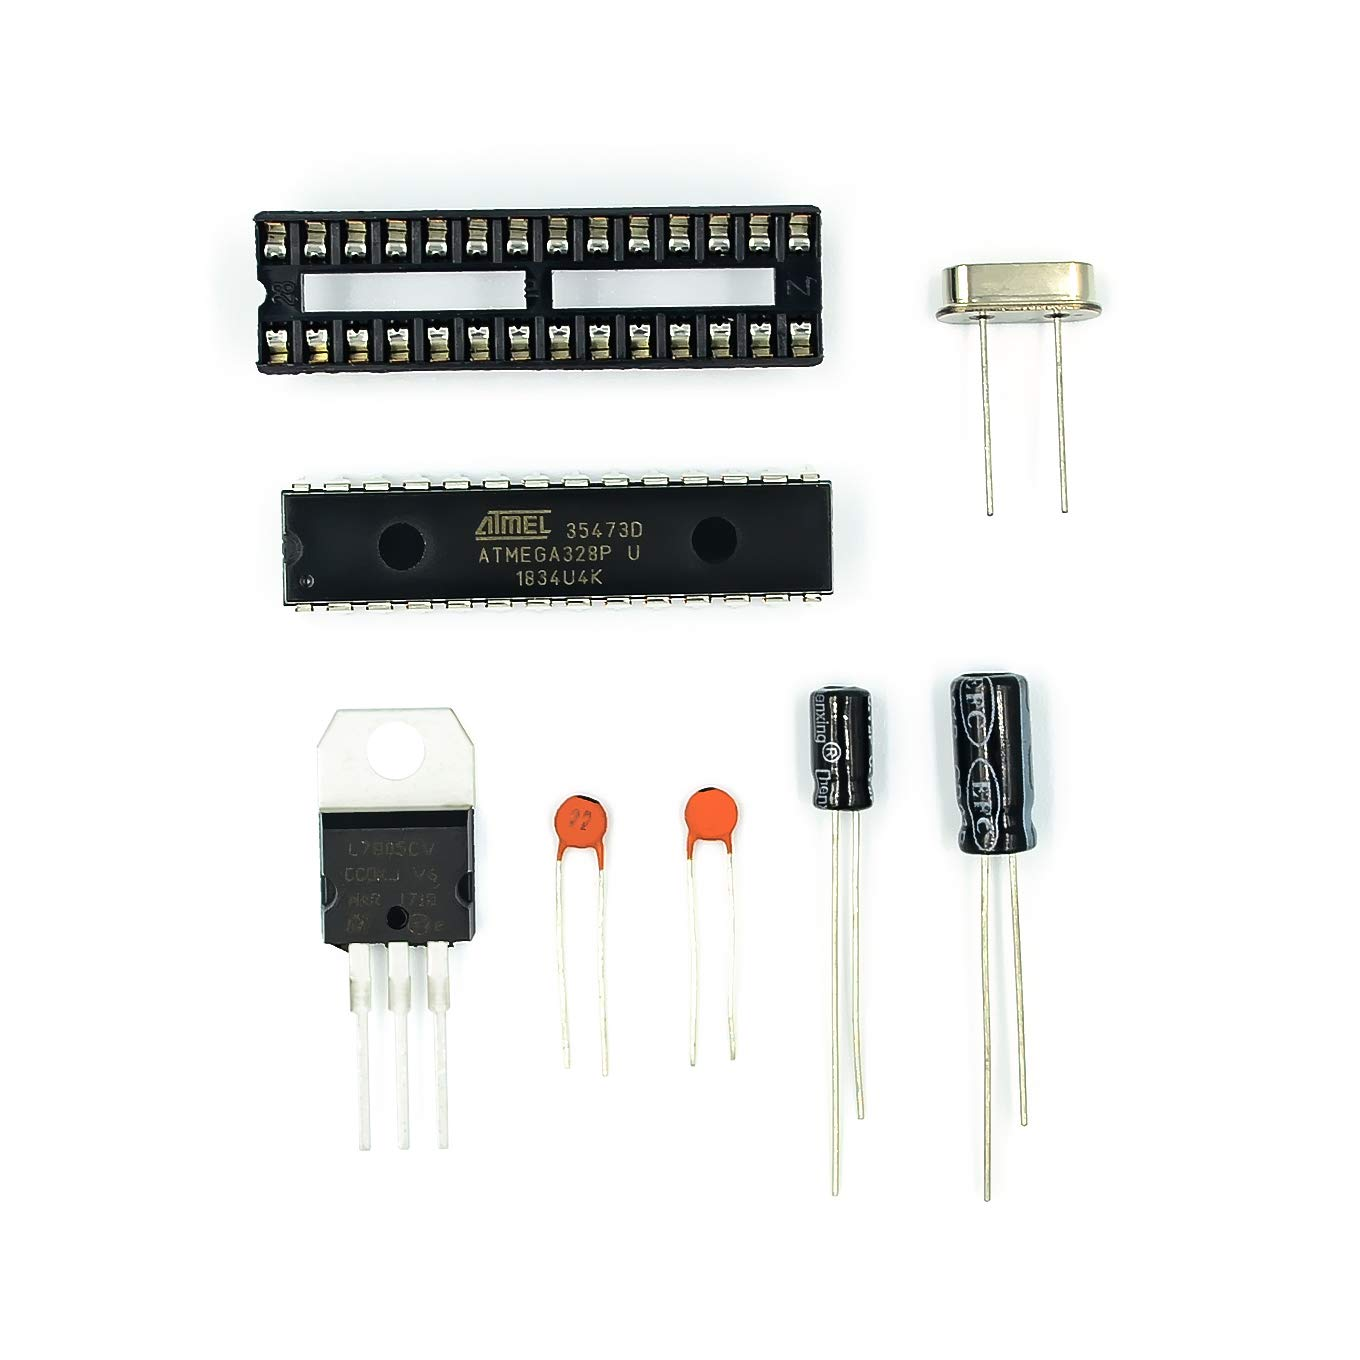 TD-ELECTRO ATMEGA328P-PU Without-Ar duino BOOTLOADER + DIP Socket & 16MHz Crystal KitGood Quality Good Price by TD-ELECTRO